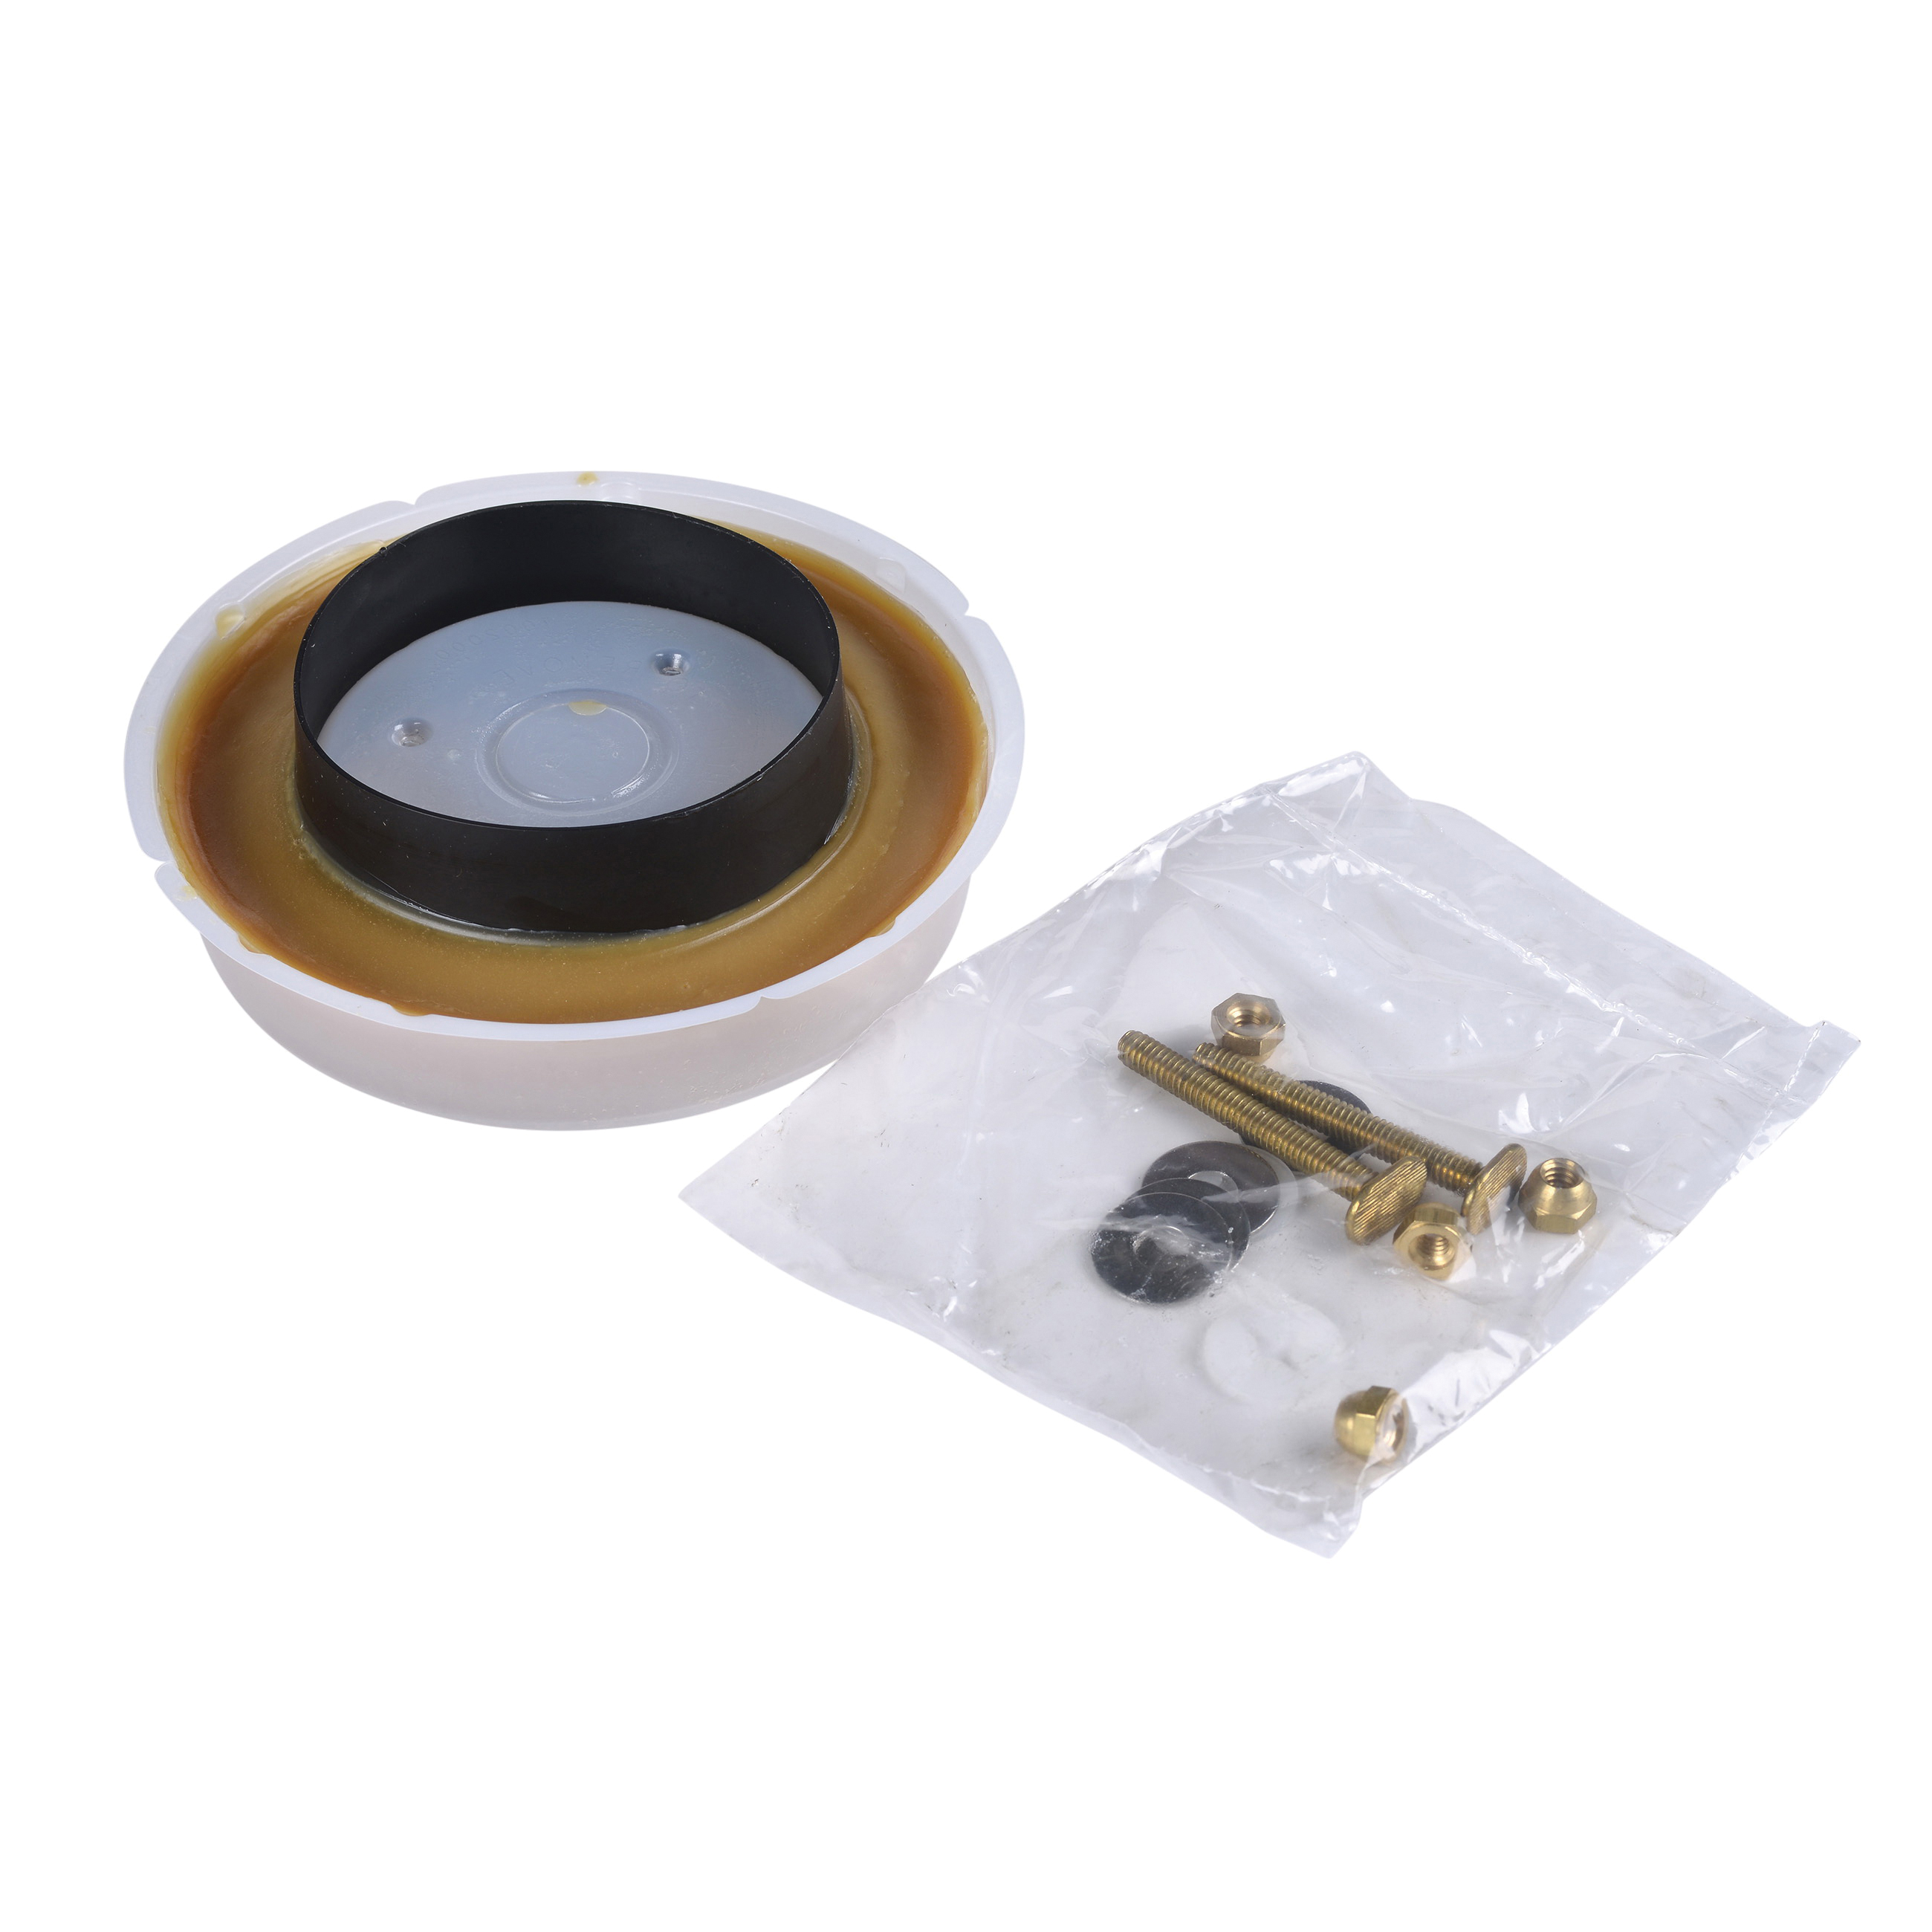 Hercules® 90224 Johni-Ring® Wax Gasket With Plastic Horn, For Use With 3 and 4 in Waste Lines, 4 in, Gold